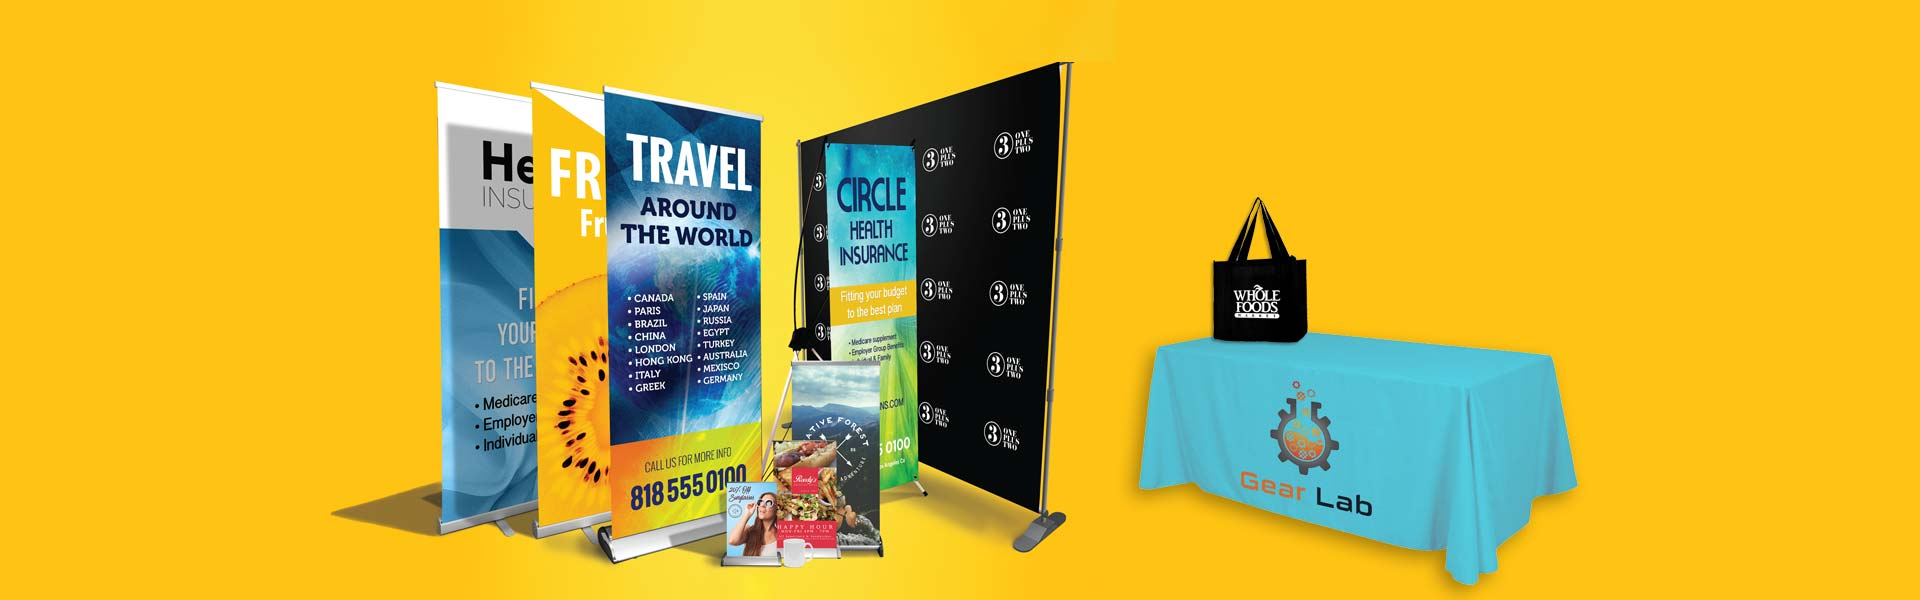 Trade Show Booth Giveaways : Trade show giveaways branded marketing promo inc